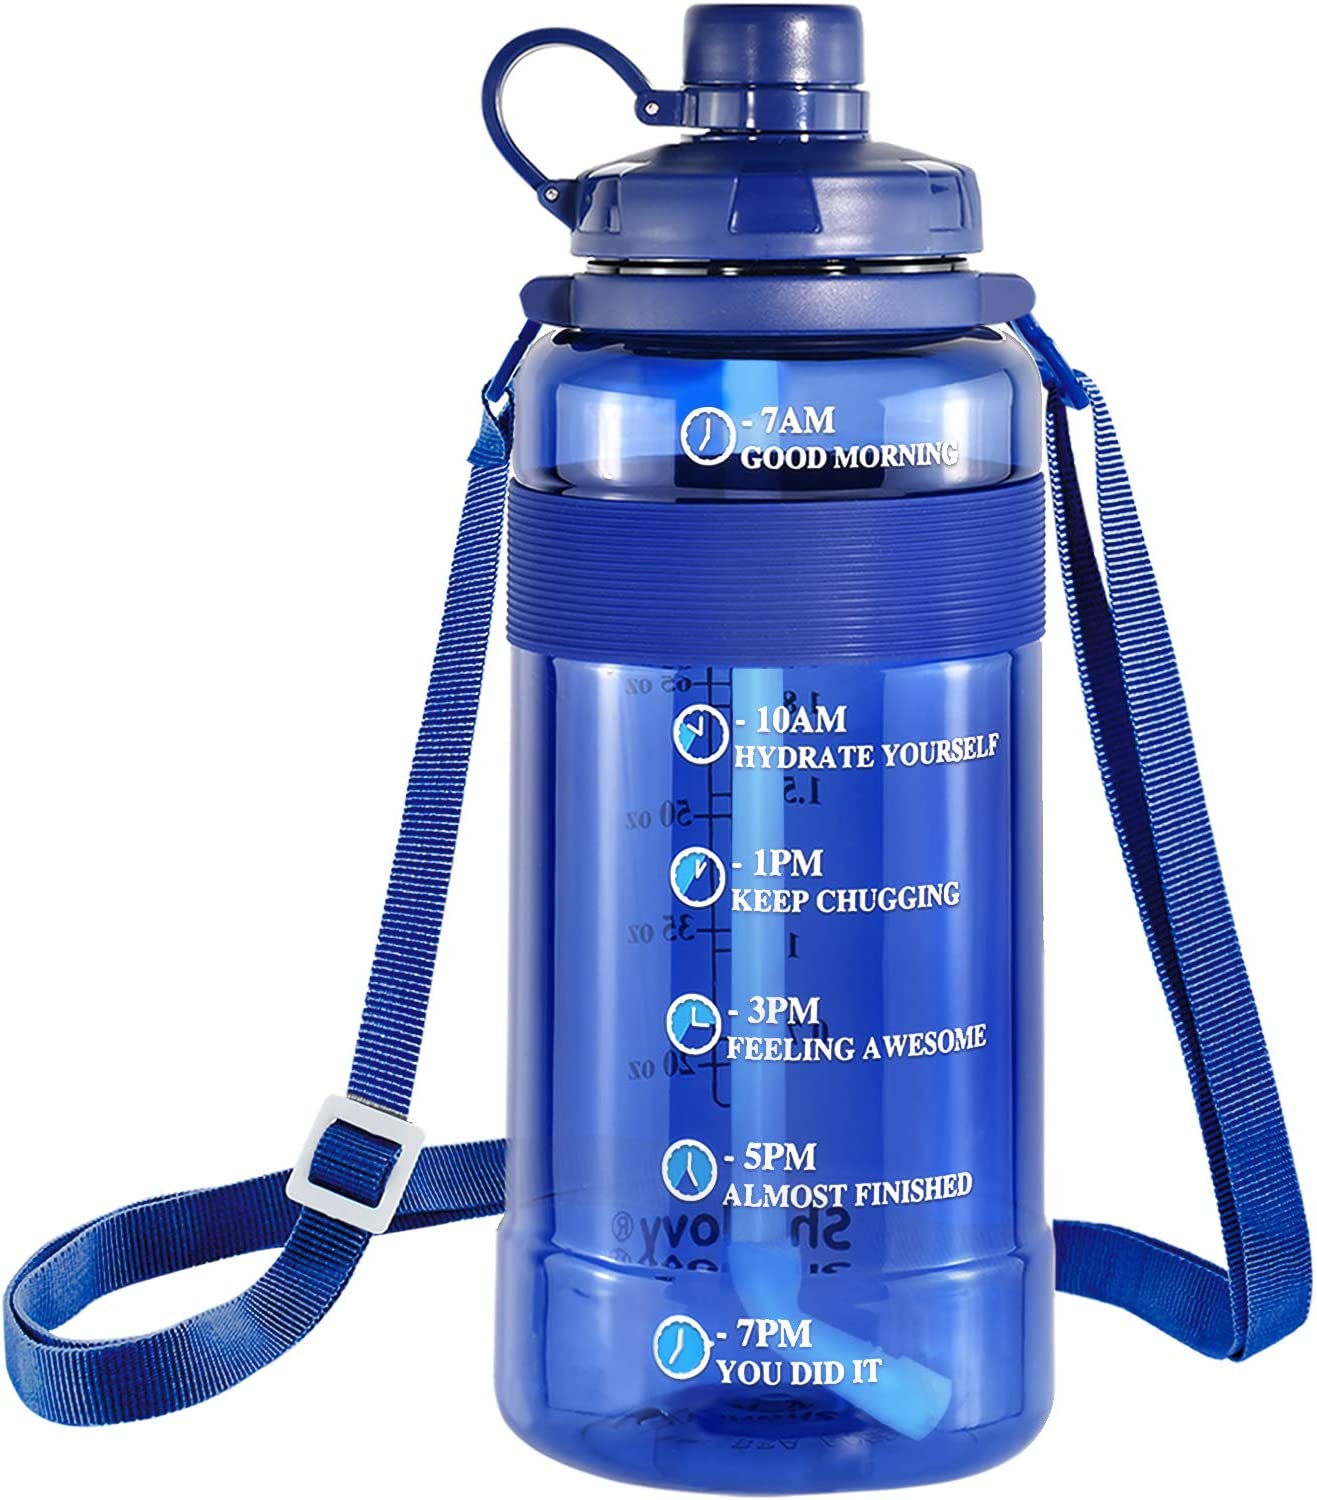 Large Water Bottle with Straw BPA Free, Sports Water Bottle with Strap Portable Motivational Water Bottle with Time Marker Water Bottle Leak Proof Gallon Water Jug Wide Mouth (100oz, Blue)